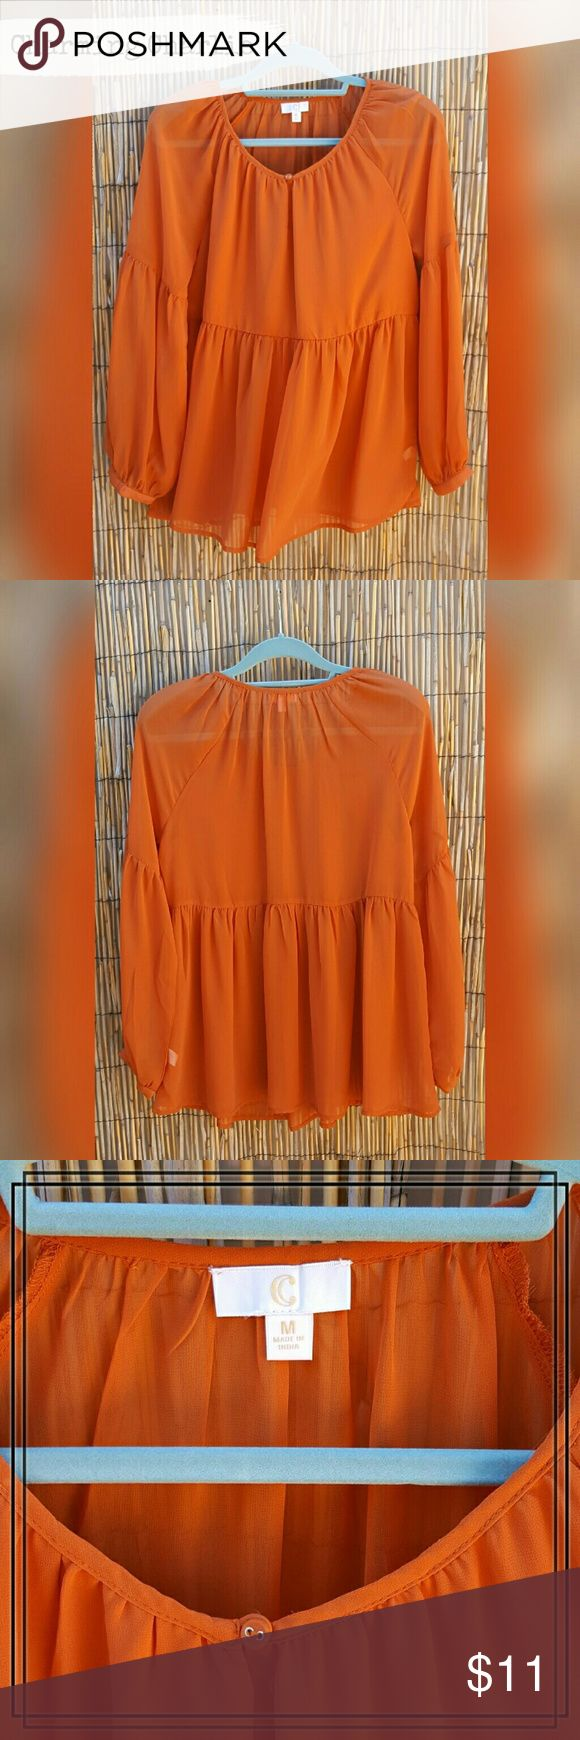 Burnt Orange Blouse Chiffon peasant style Blouse. Scoop neckline with a button closure in front. Never worn. ?????? Charming Charlie Tops Blouses